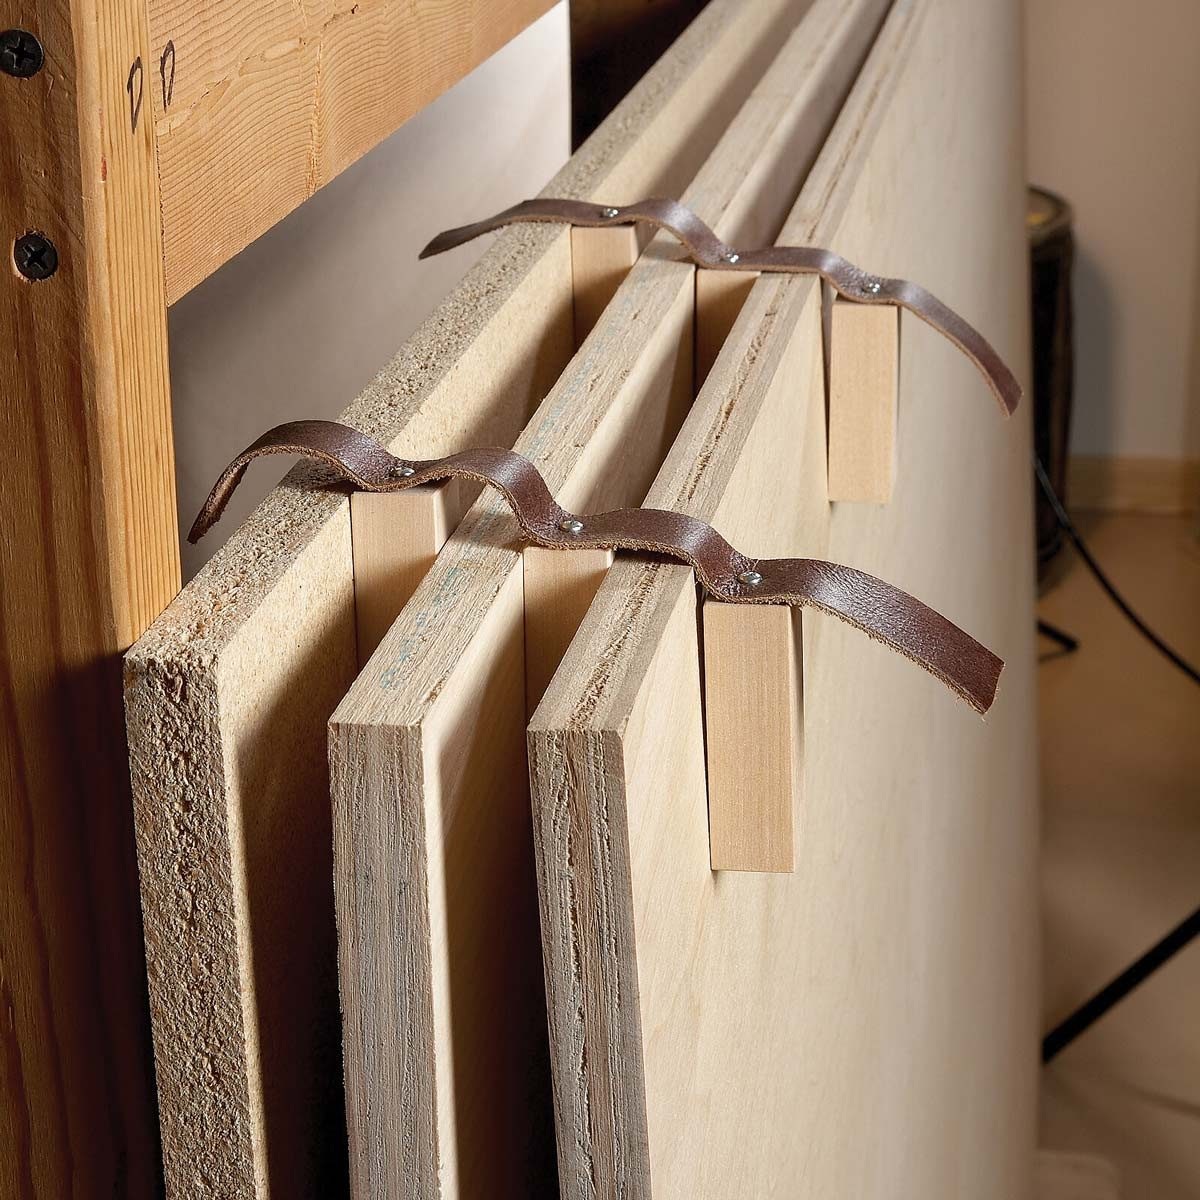 the best hack for storing plywood | the family handyman